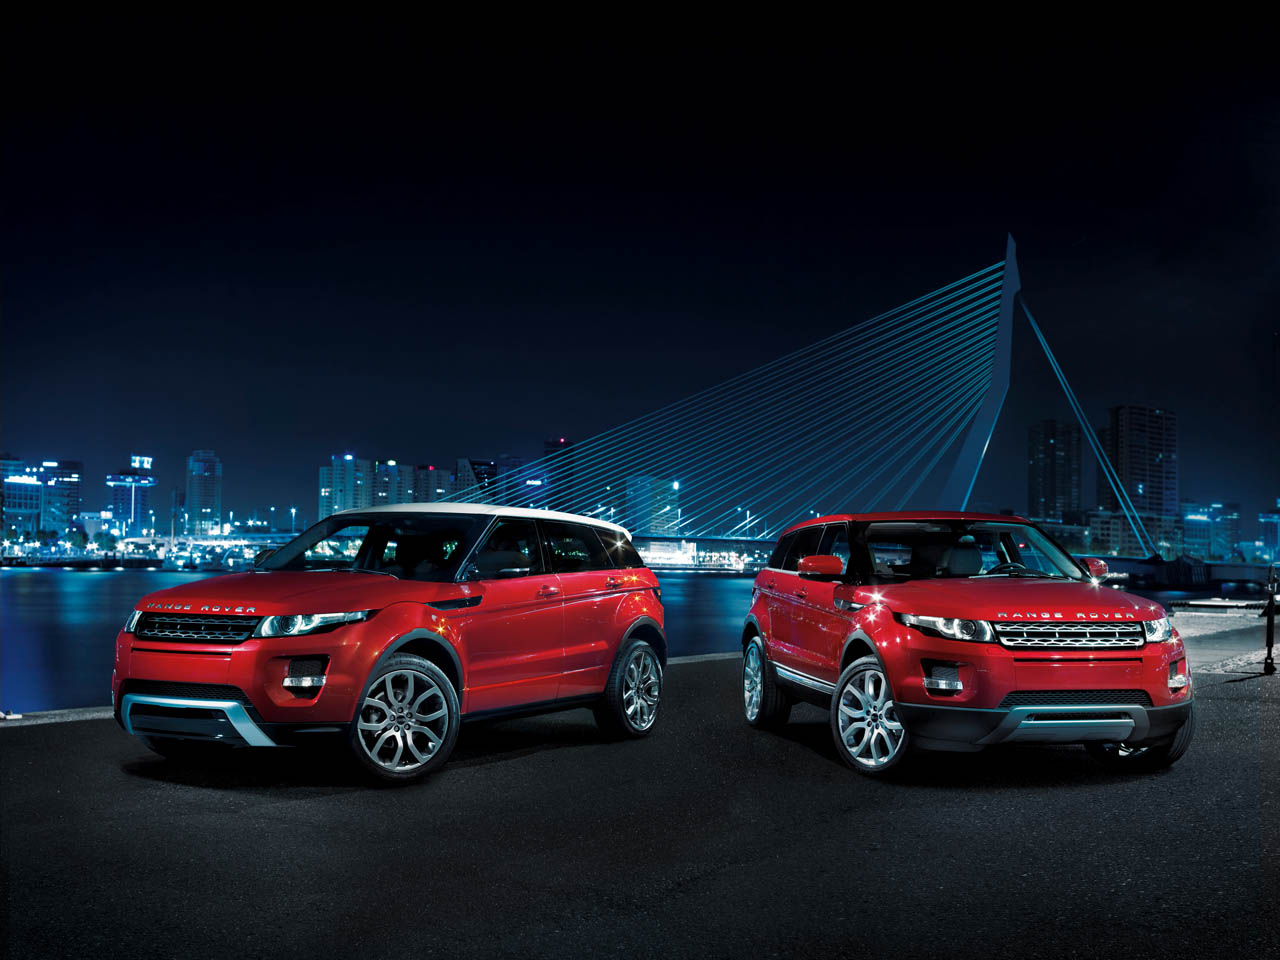 Range Rover Evoque Couple